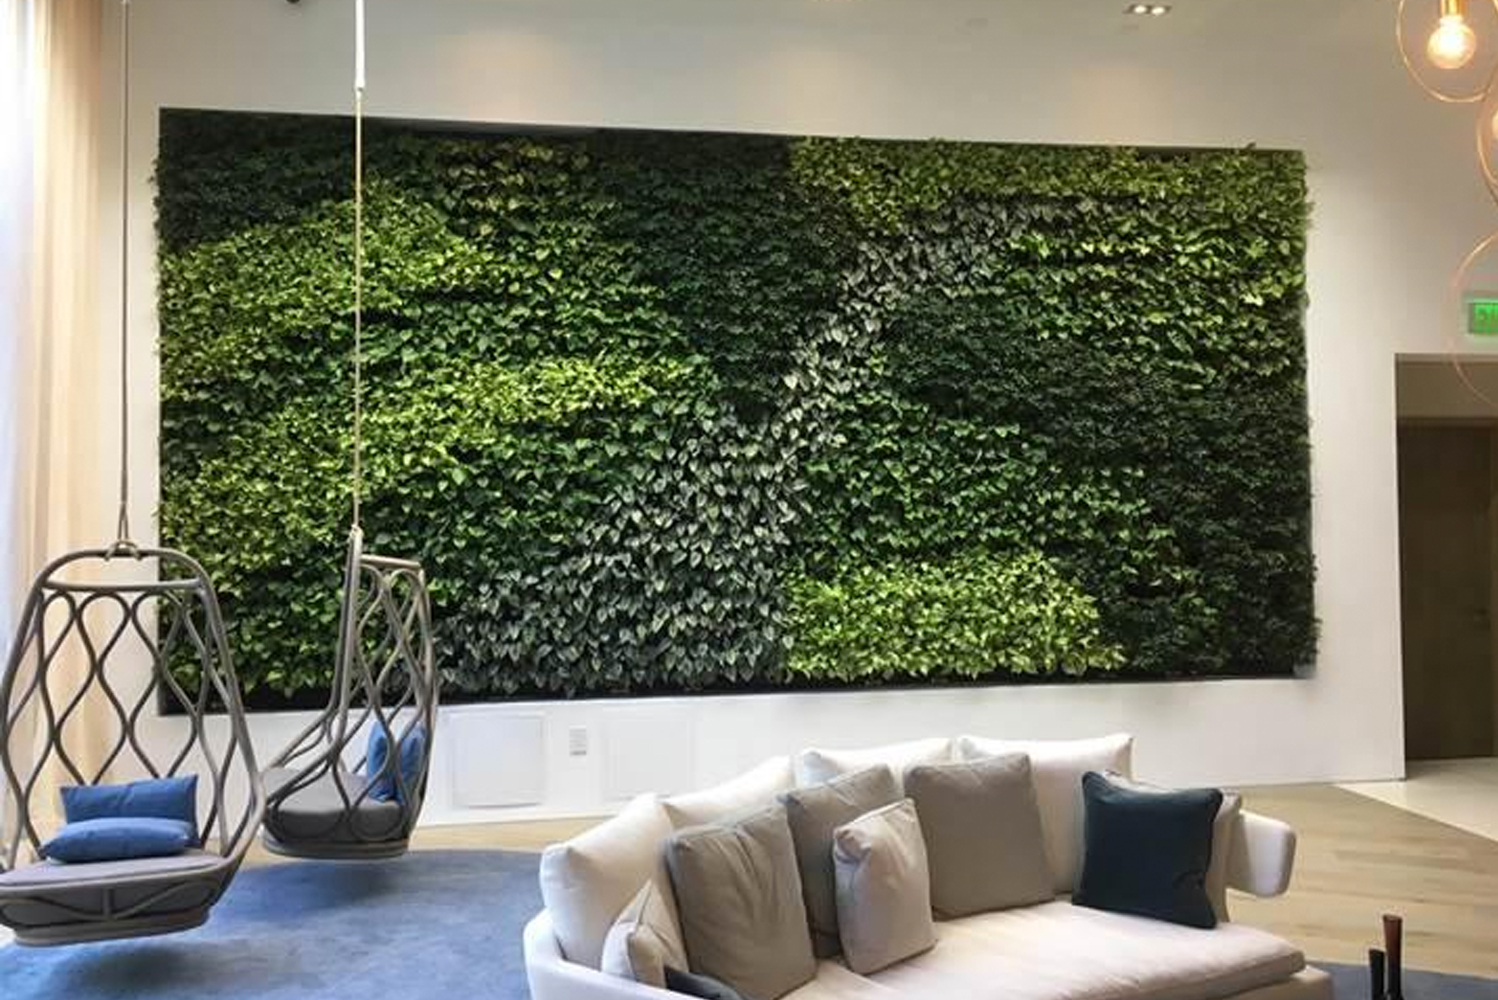 Engineered with a tray designed for simplified installation and maintenance – plus higher water efficiency – the Versa Wall is a green solution for shopping malls, residences, corporate campuses, hotels and restaurants.